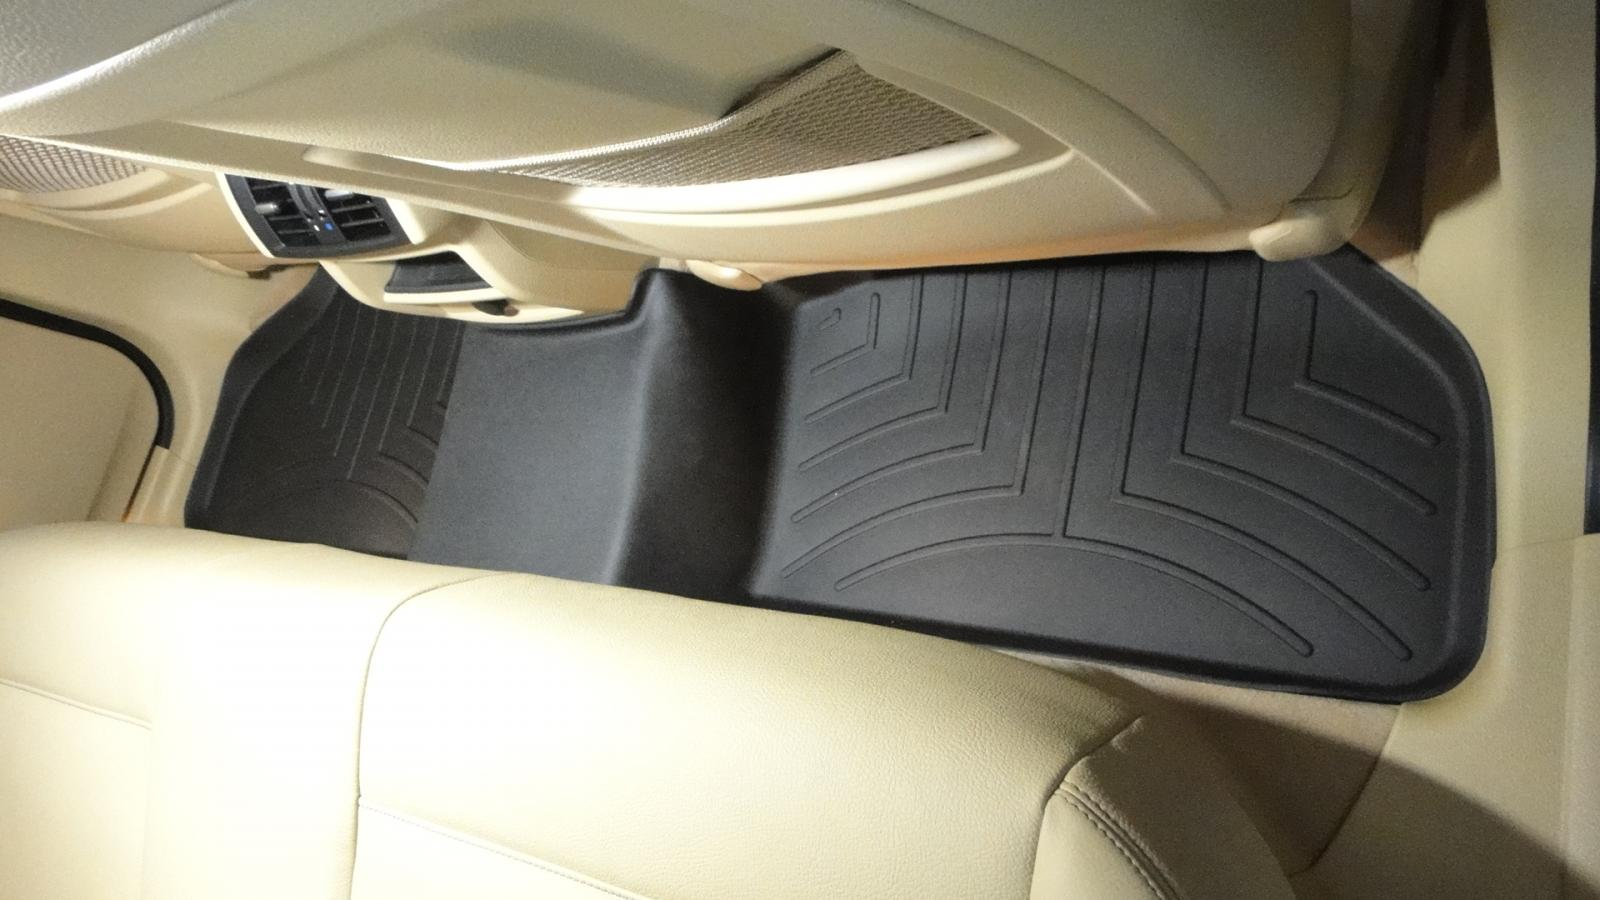 2014 bmw x3 weathertech floor mats - At The Corner Of Each Front Mat Is A Rectangle Where A Cheesy Weathertech Self Adhesive Badge Was Inserted They Pulled Out Easily And Left No Residue